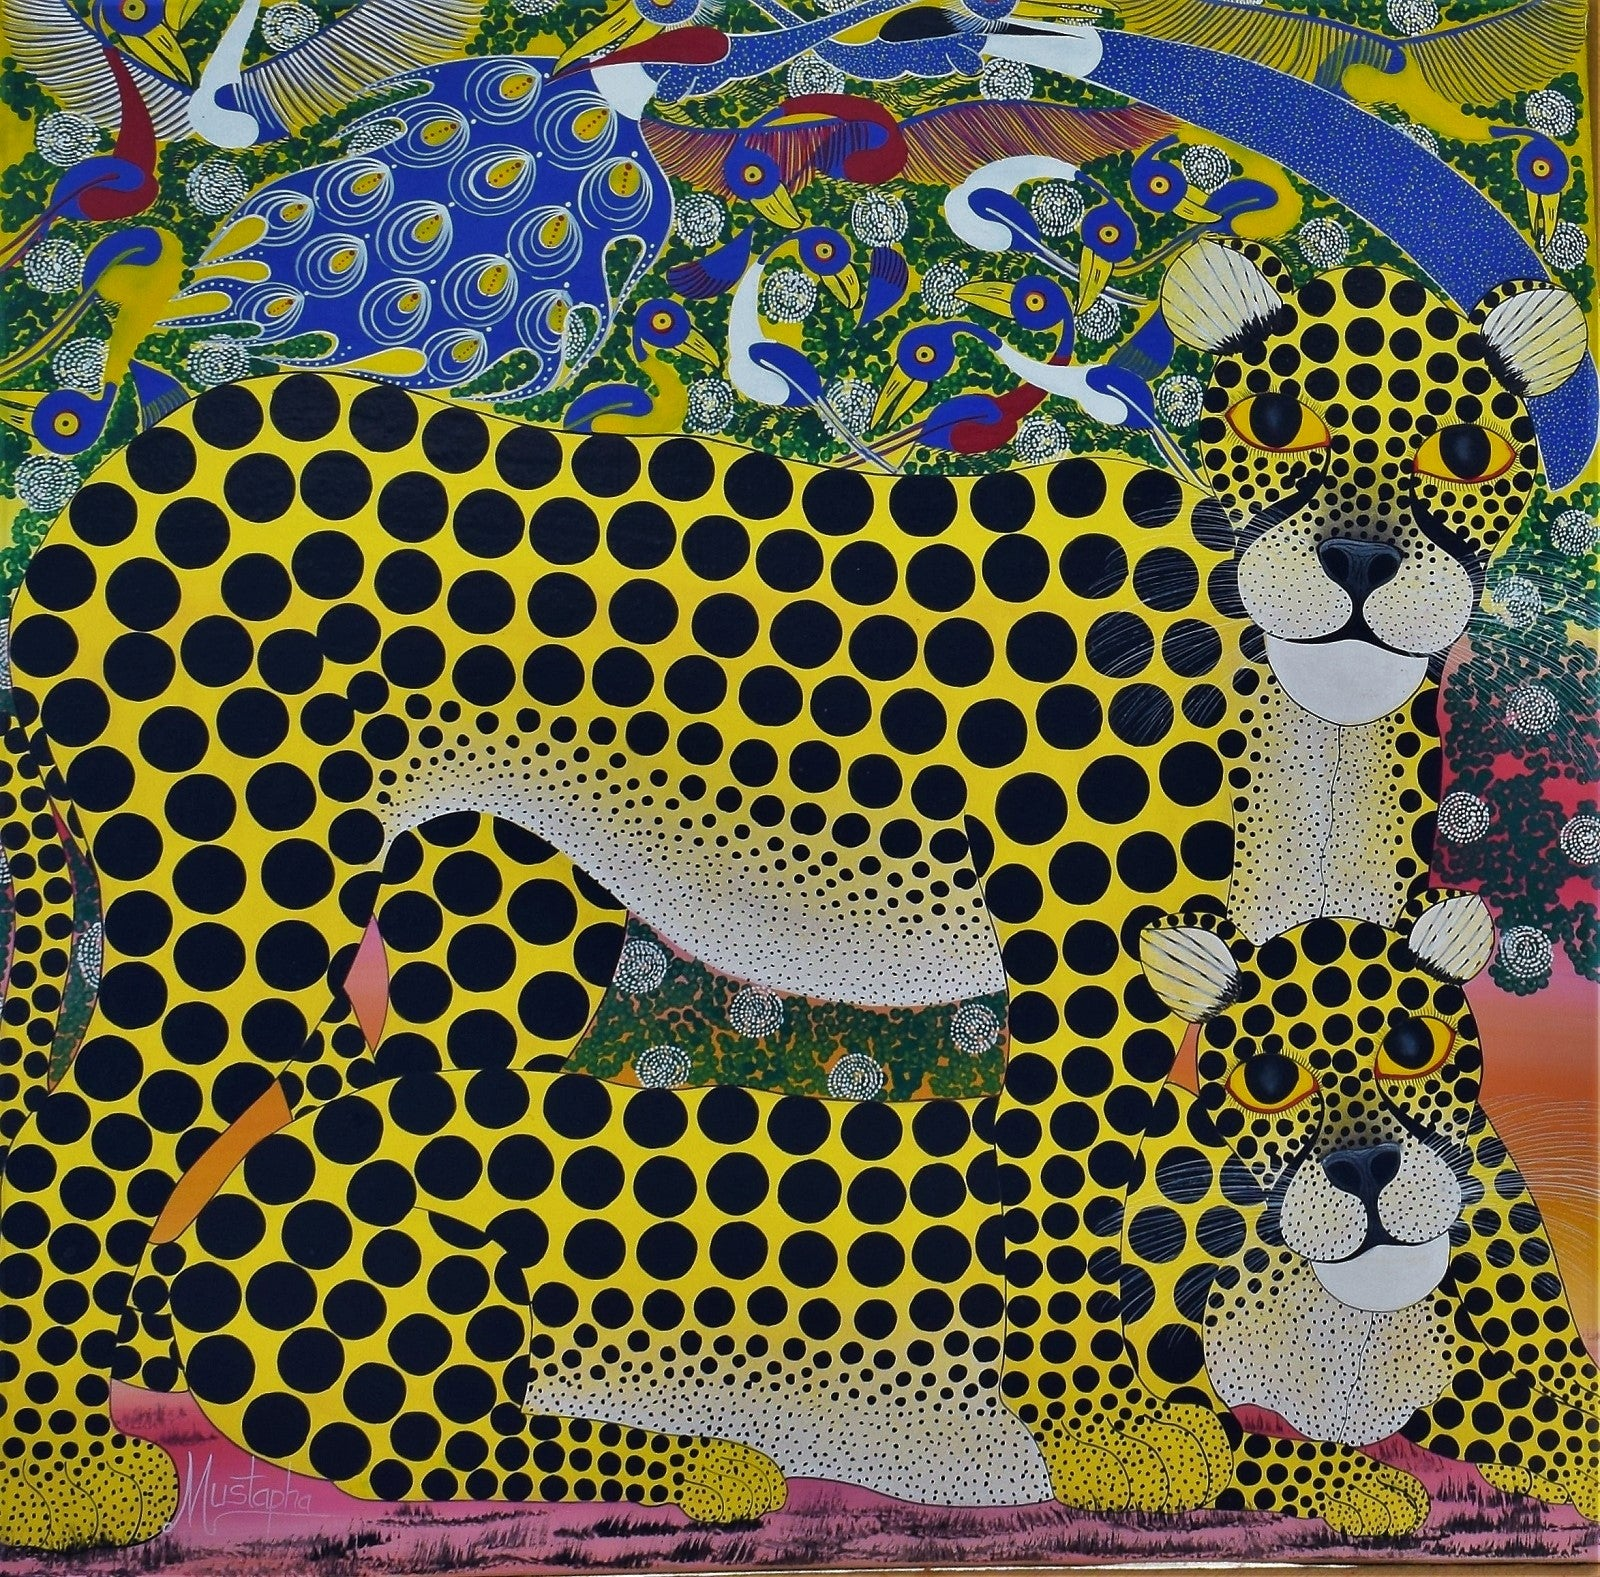 tinga tinga african art and painting of two cheetahs for sale